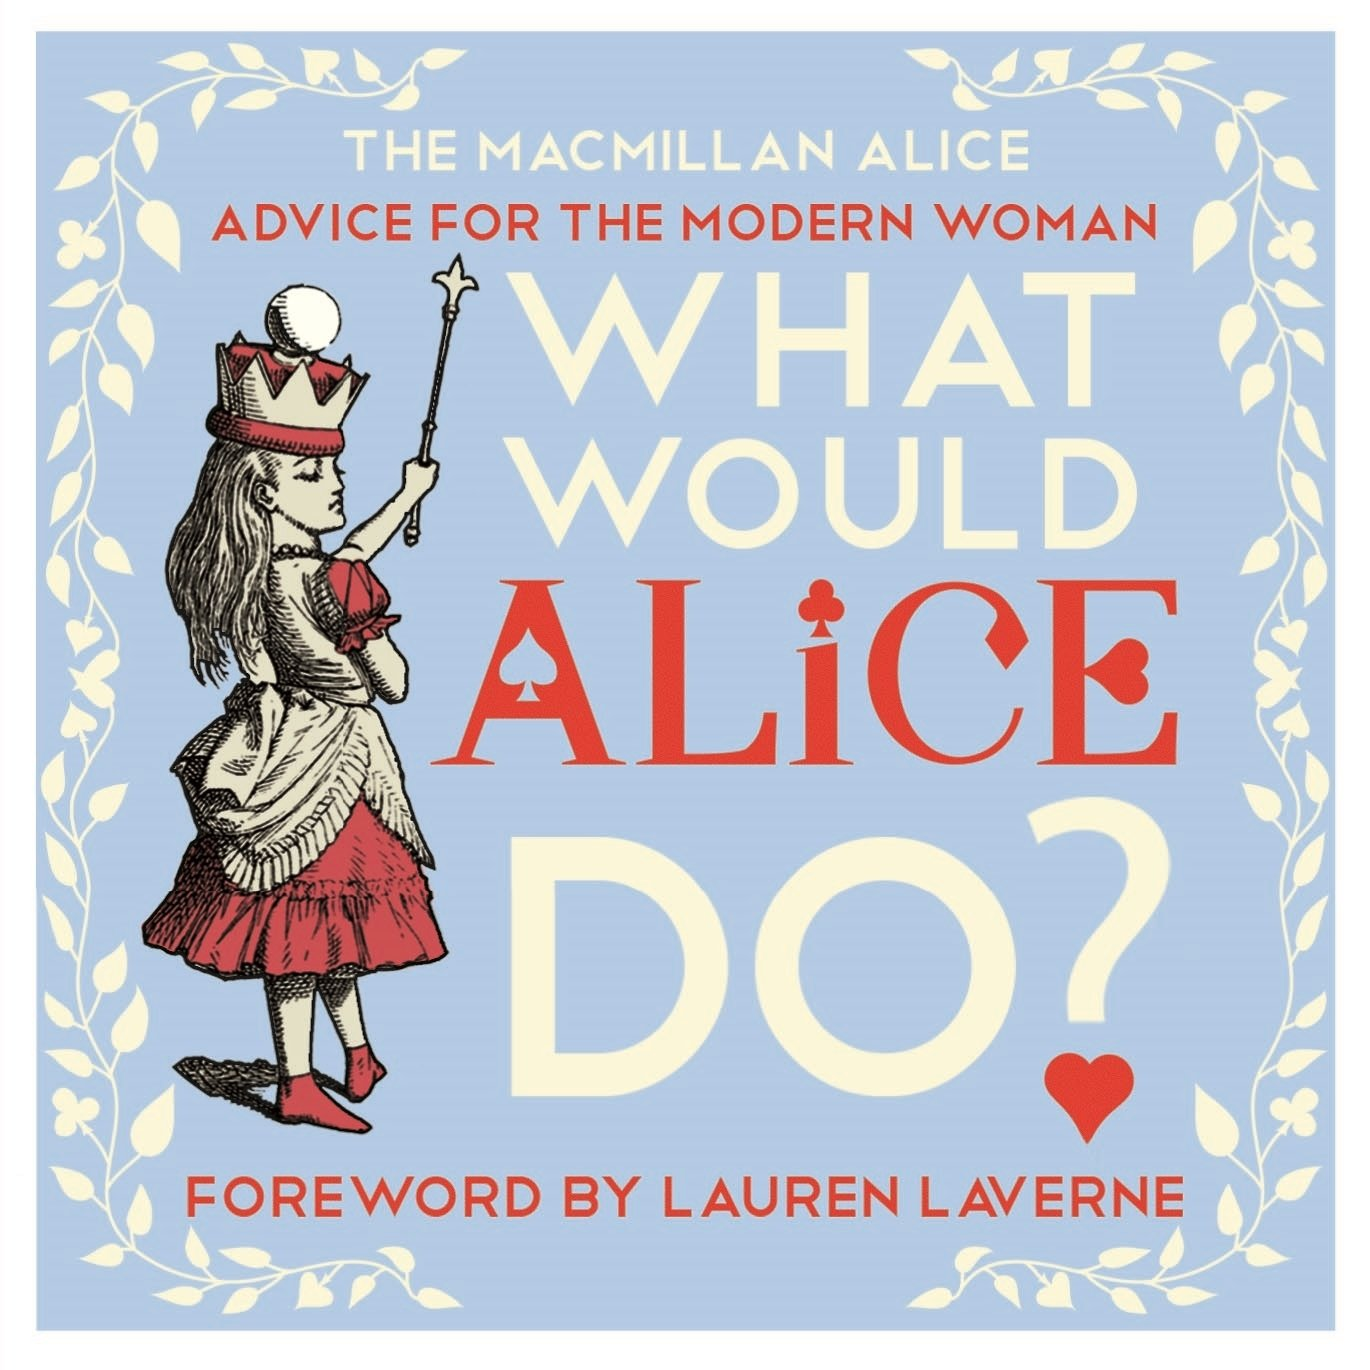 What Would Alice Do   Advice For The Modern Woman  The Macmillan Alice